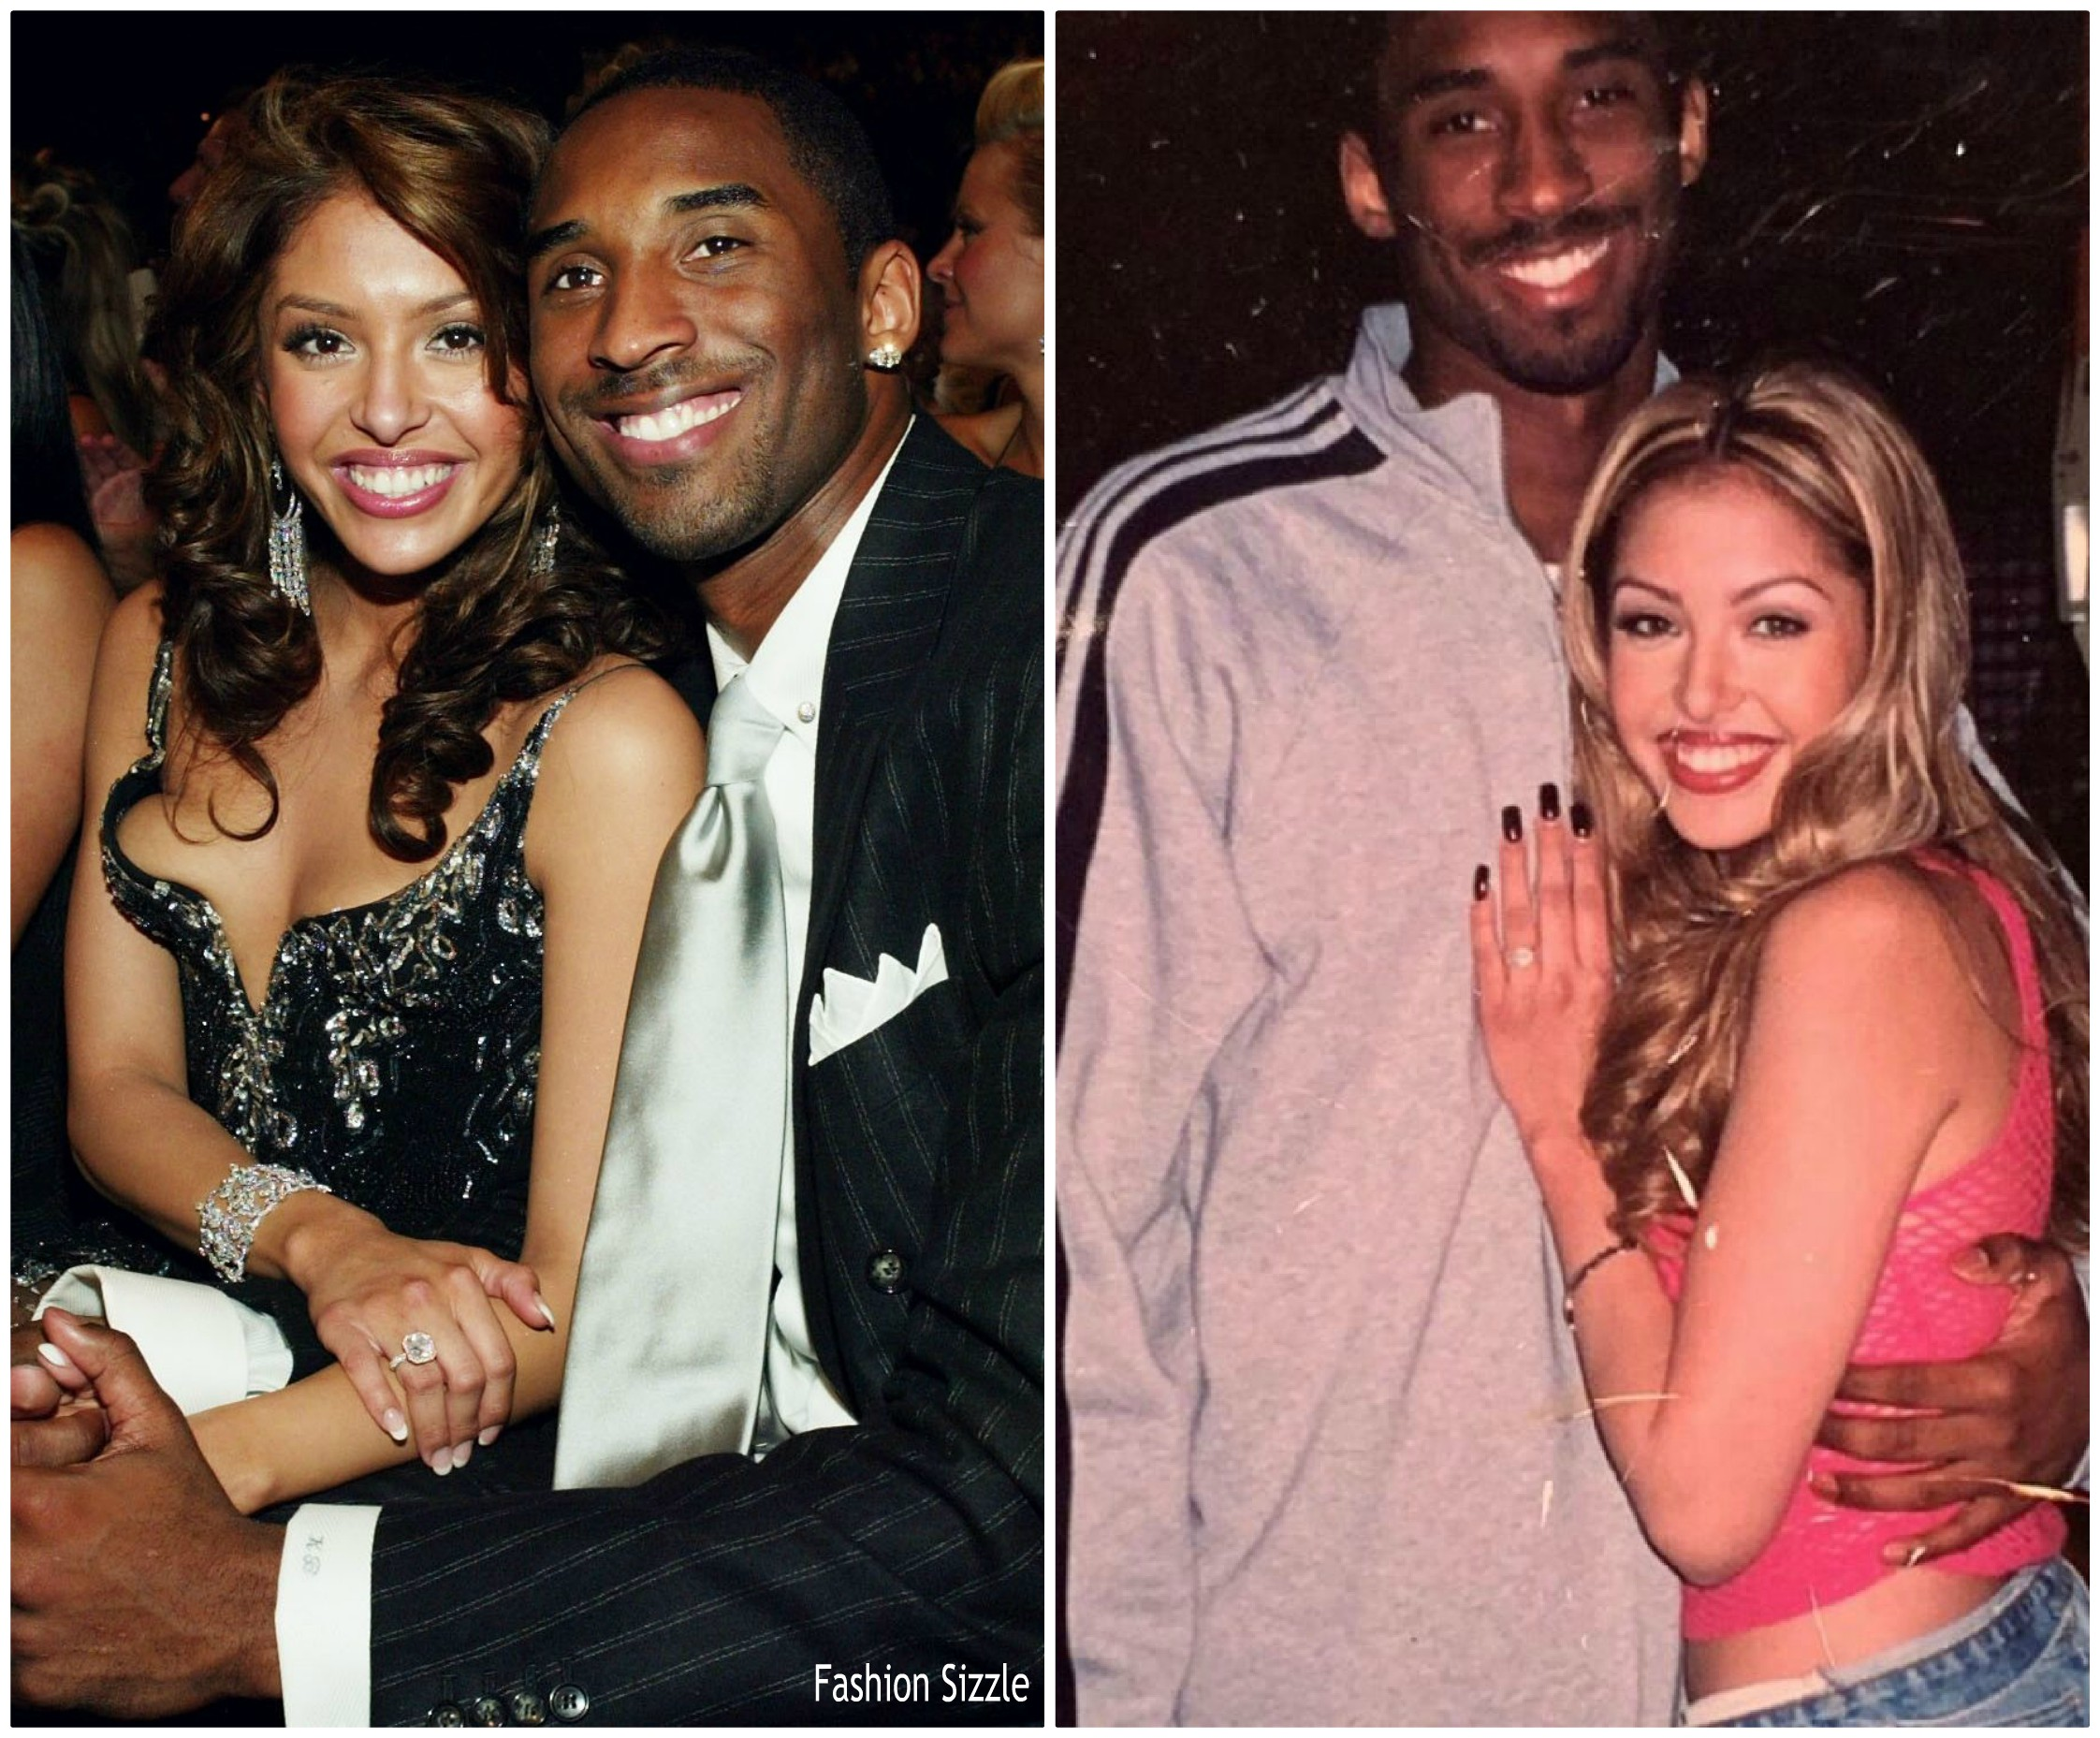 vanessa-bryant-shares-video-of-kobe-to-celebrate-their-19th-wedding-anniversary